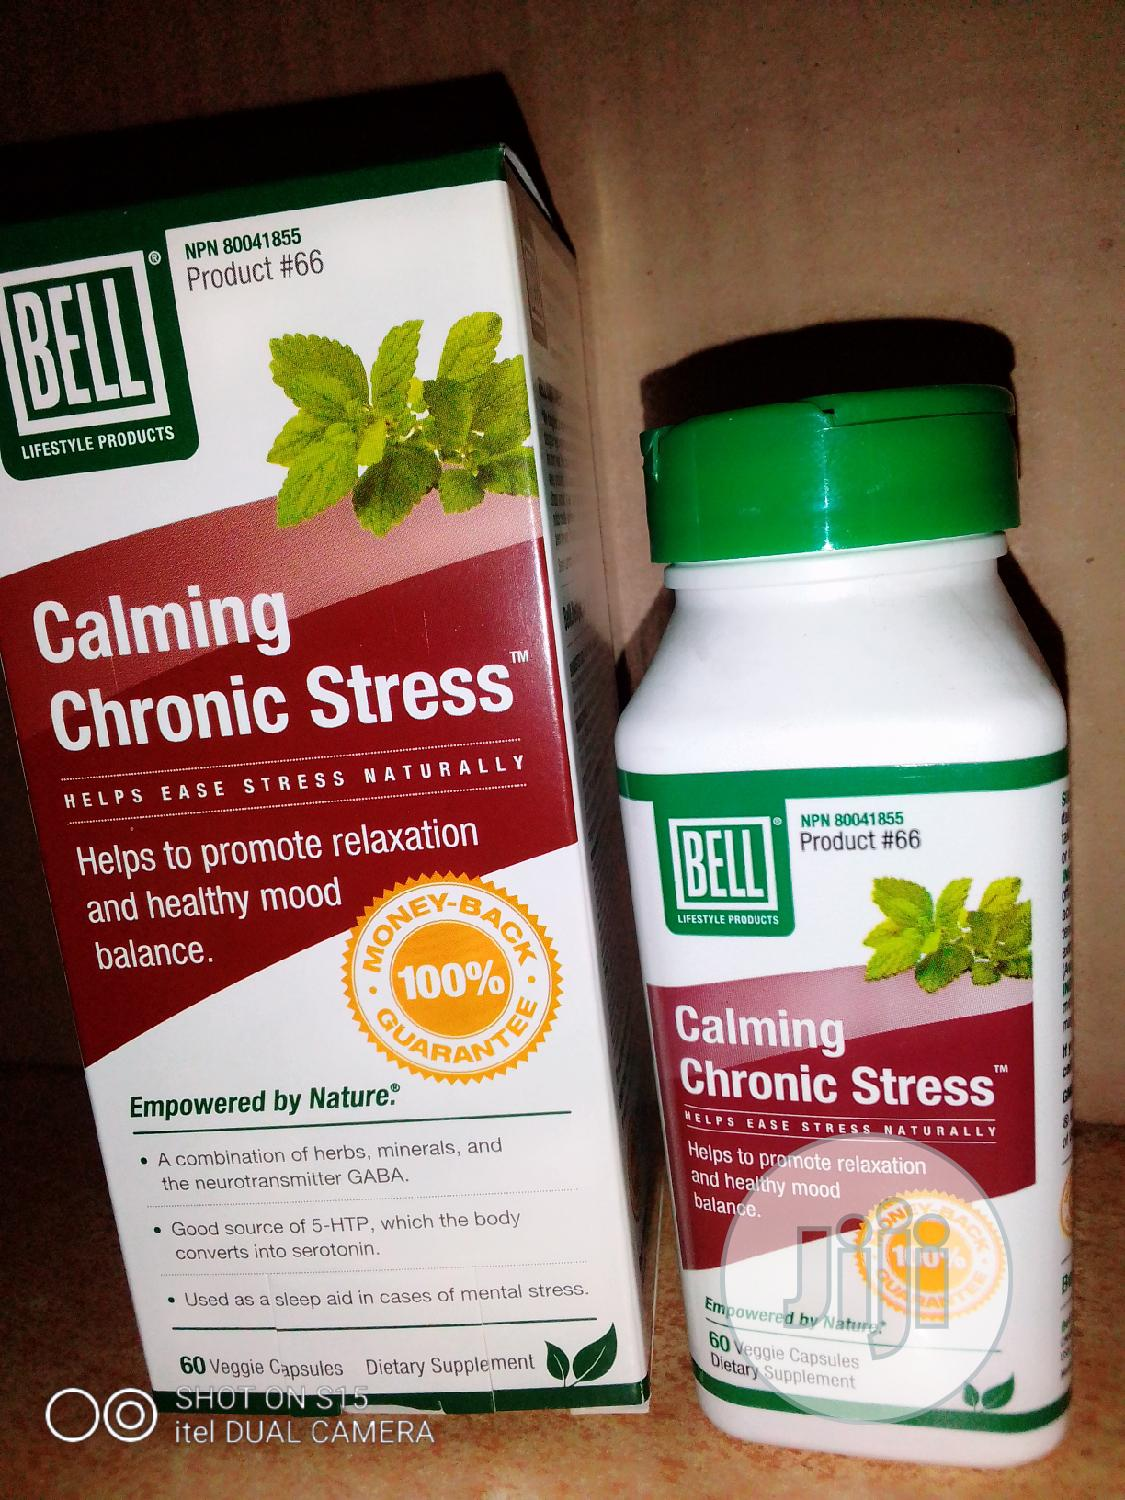 Calming Chronic Stress To Relieve Stress, Promote Mood, Relief Fatigue